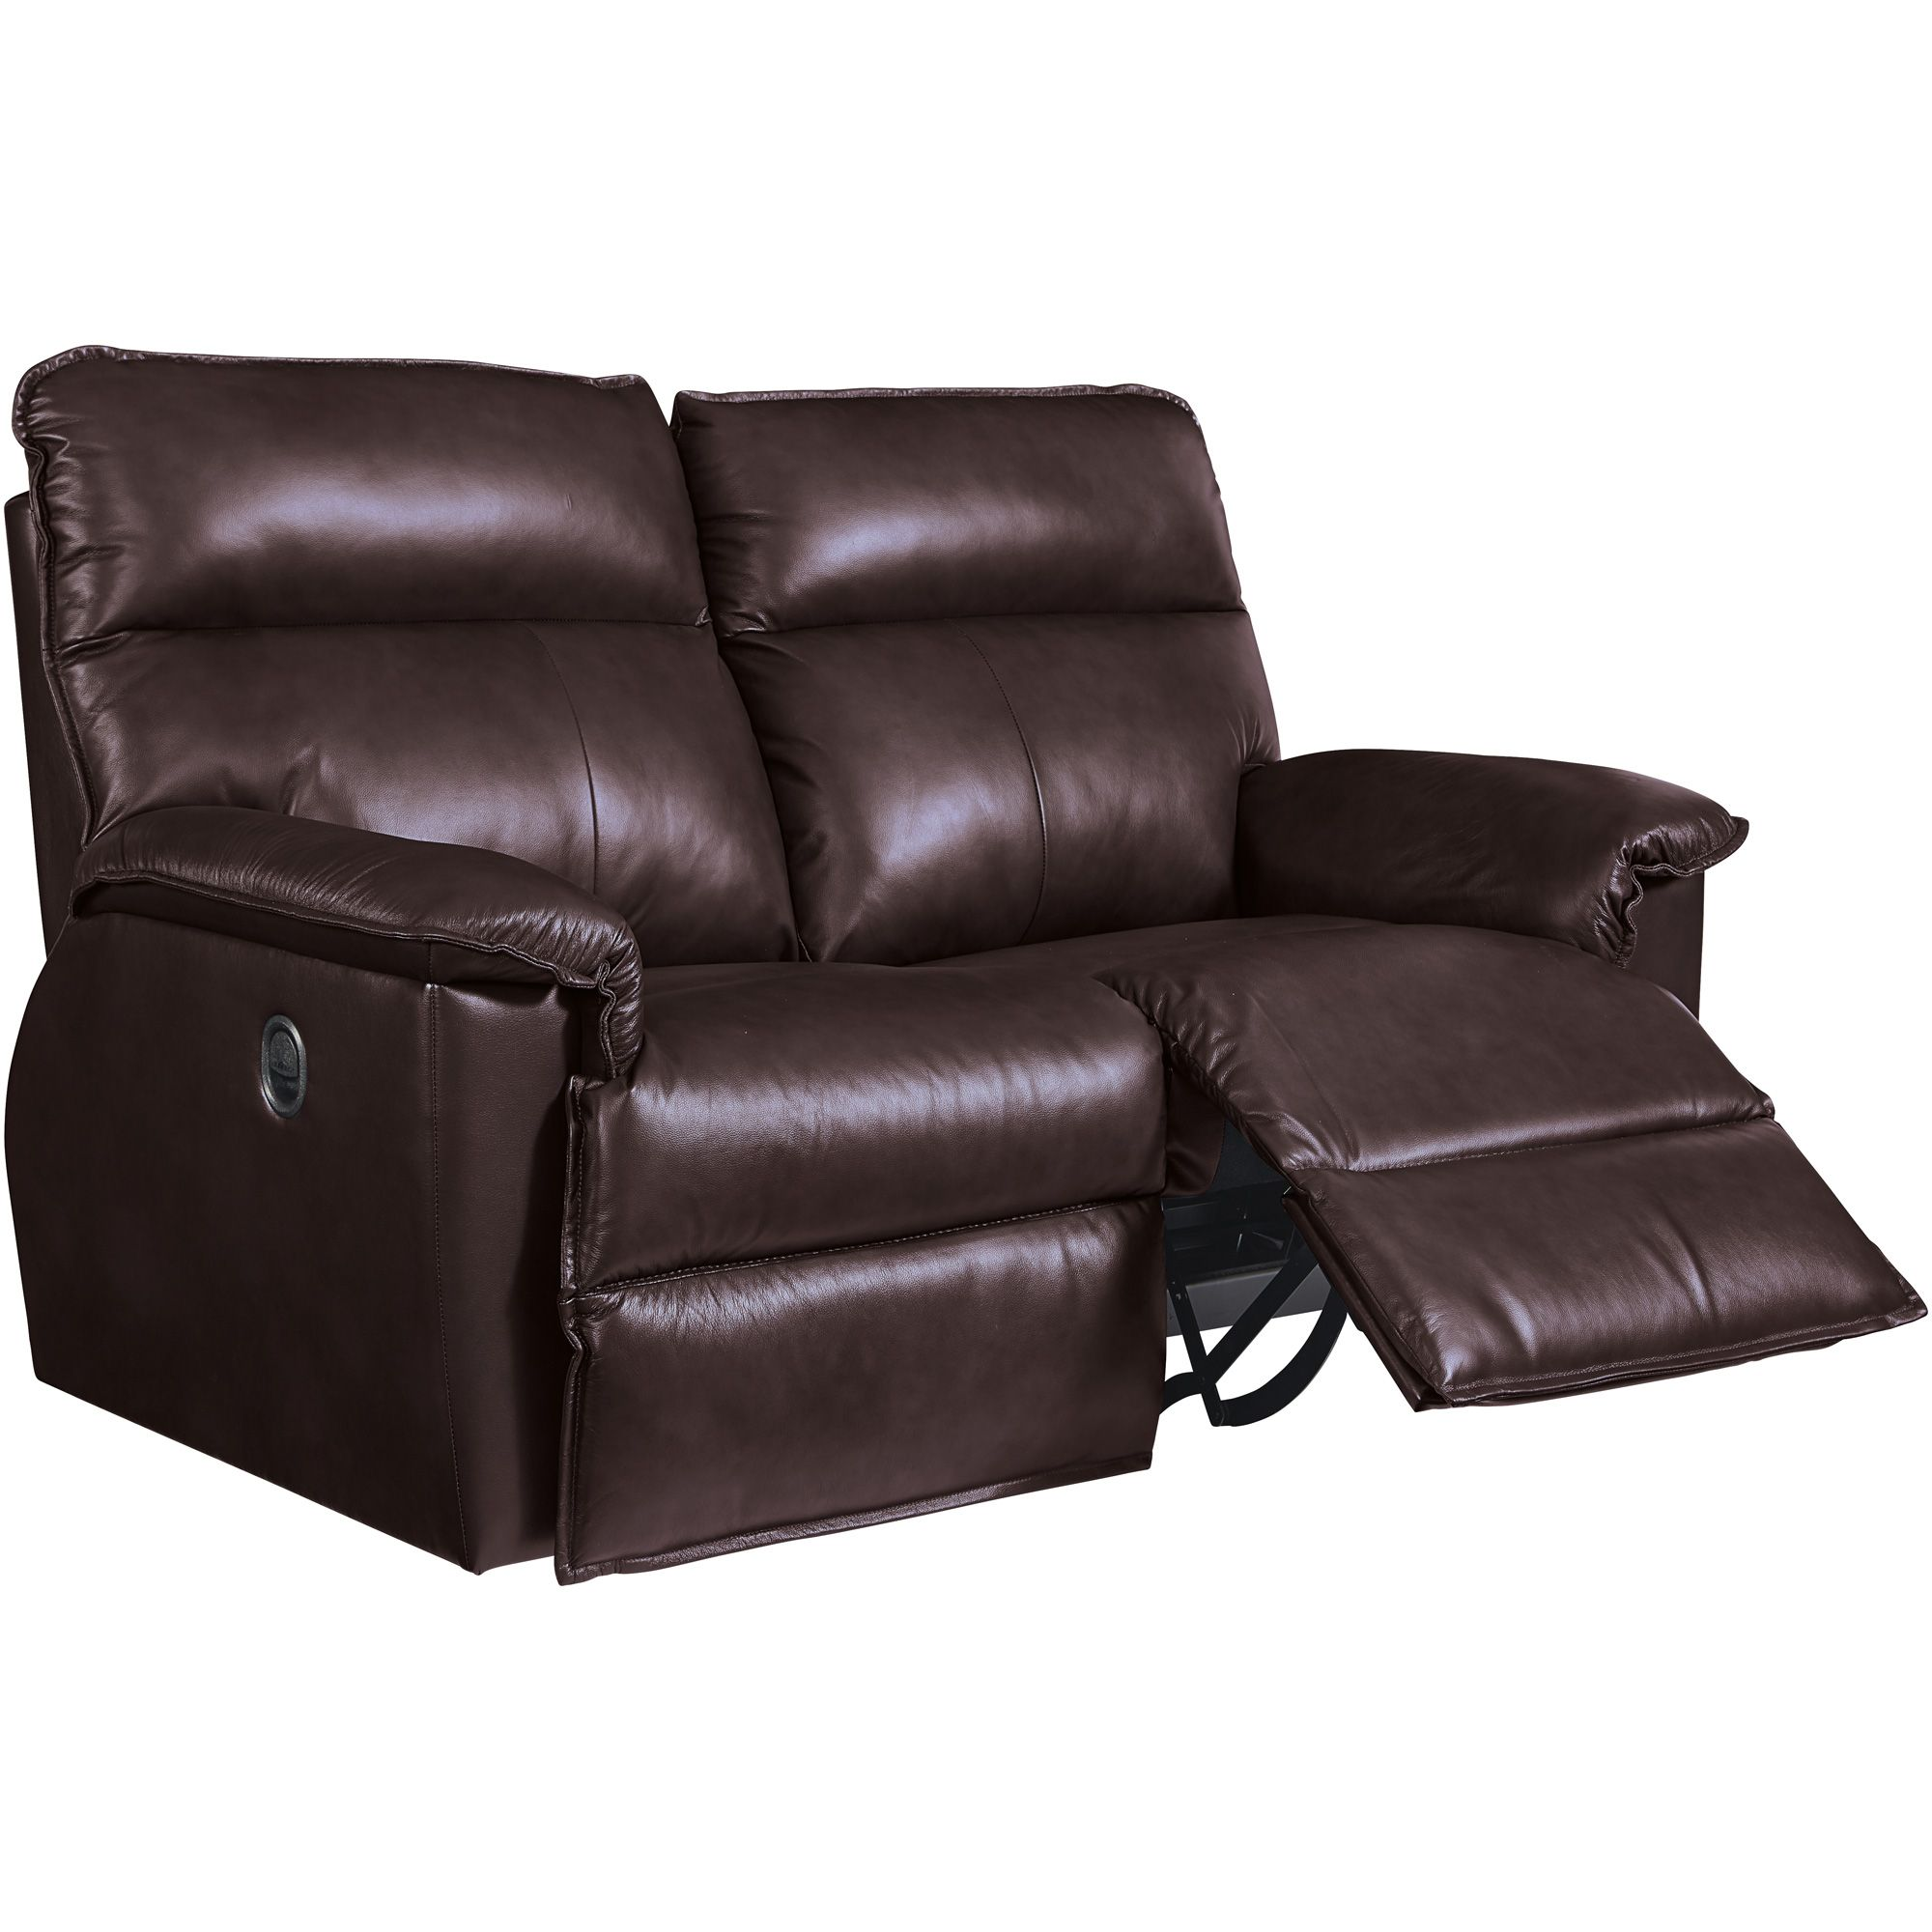 Admirable Jay Chocolate Reclining Loveseat Products In 2019 Power Caraccident5 Cool Chair Designs And Ideas Caraccident5Info